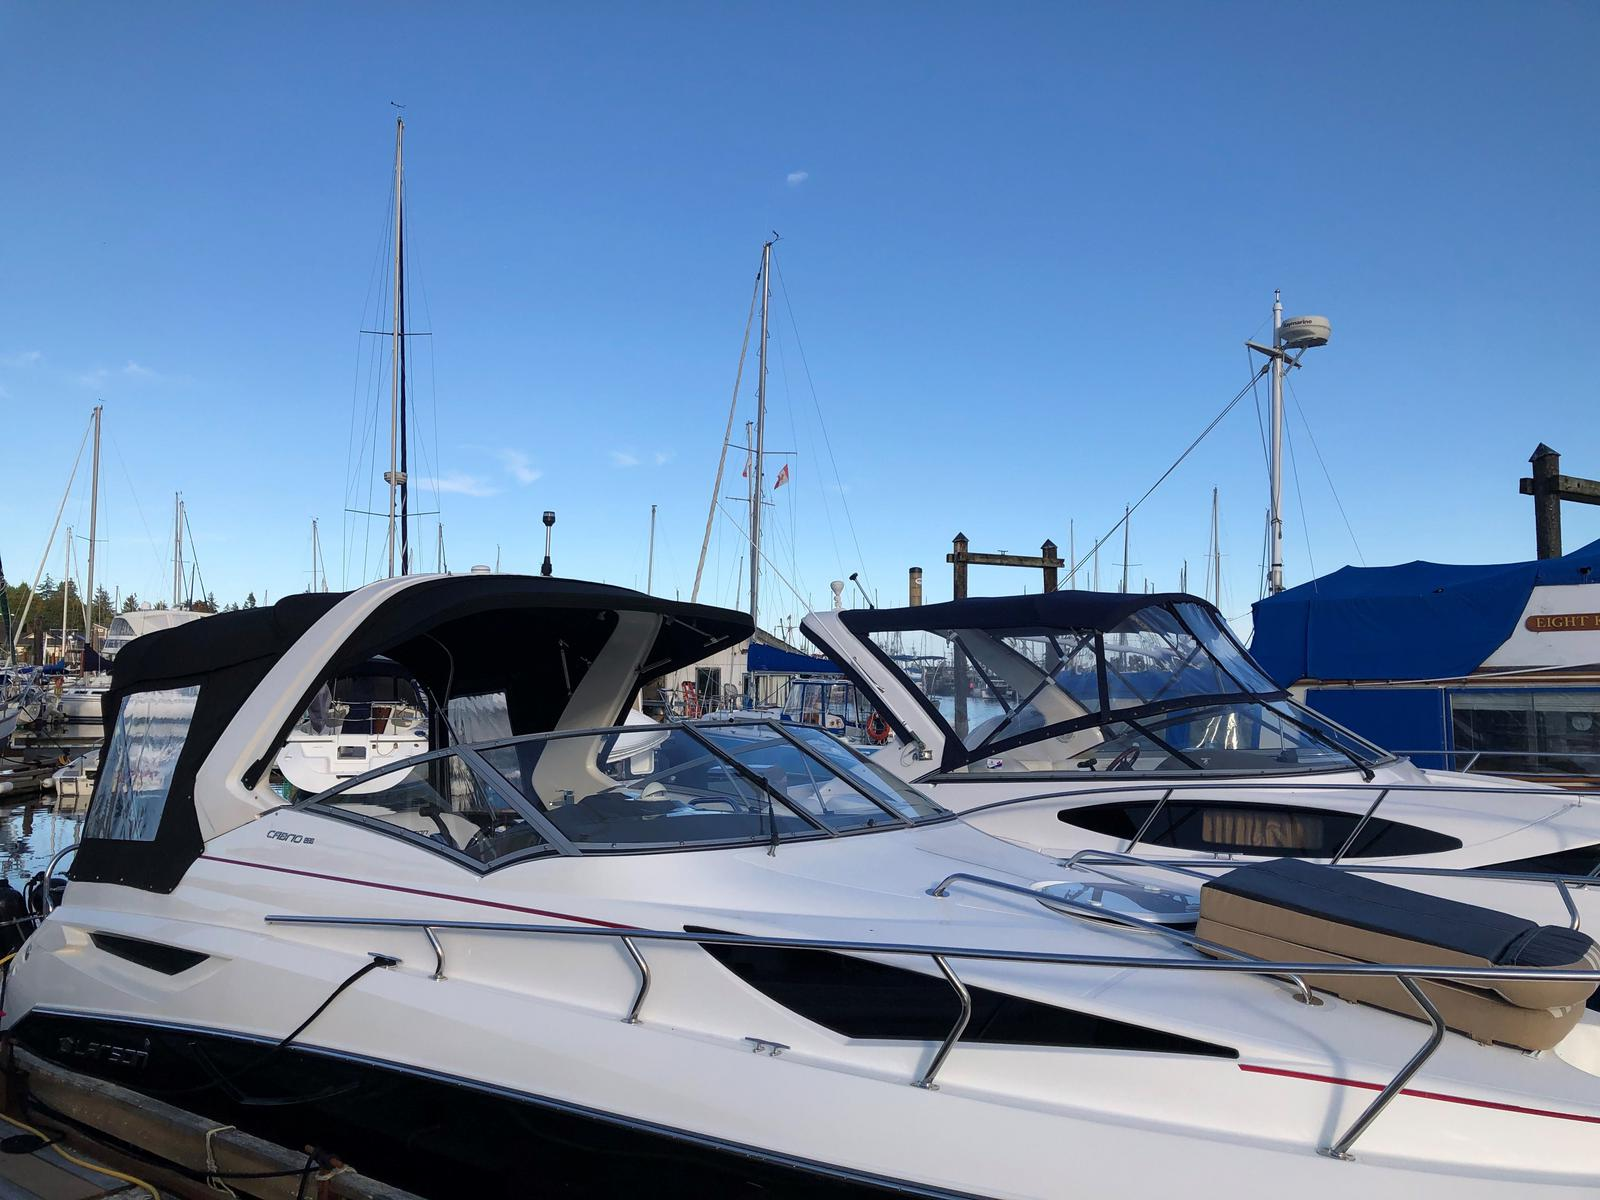 2015 Larson boat for sale, model of the boat is Cabrio 285 & Image # 2 of 3